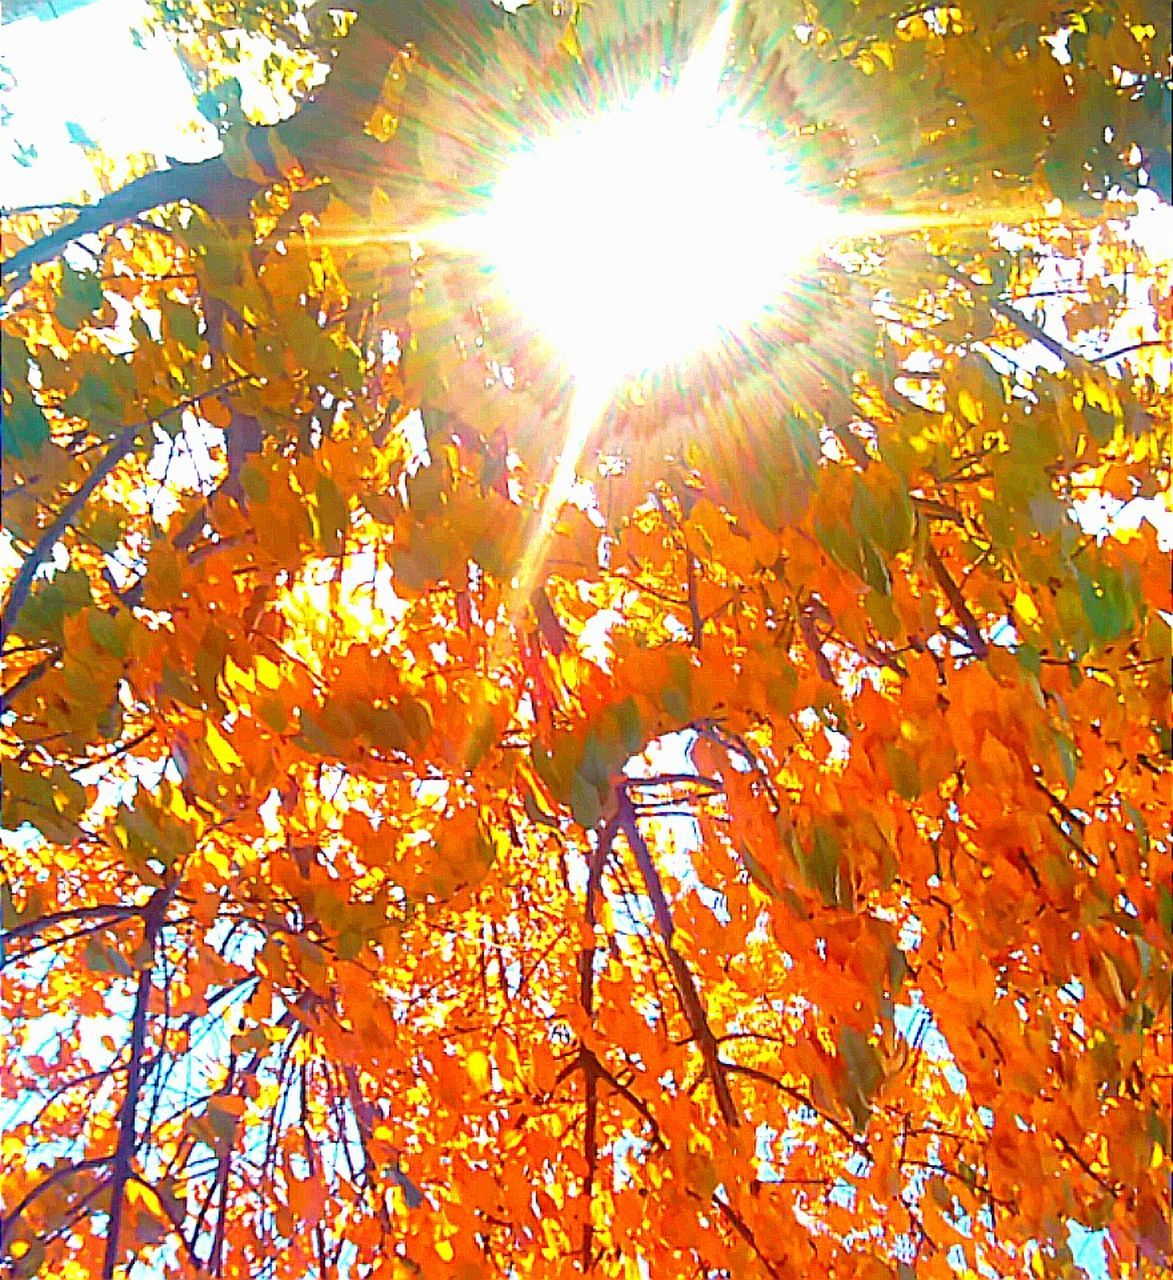 autumn, leaf, change, nature, sunlight, low angle view, tree, maple tree, sunbeam, orange color, lens flare, beauty in nature, sun, outdoors, day, maple leaf, no people, branch, growth, scenics, brightly lit, sky, close-up